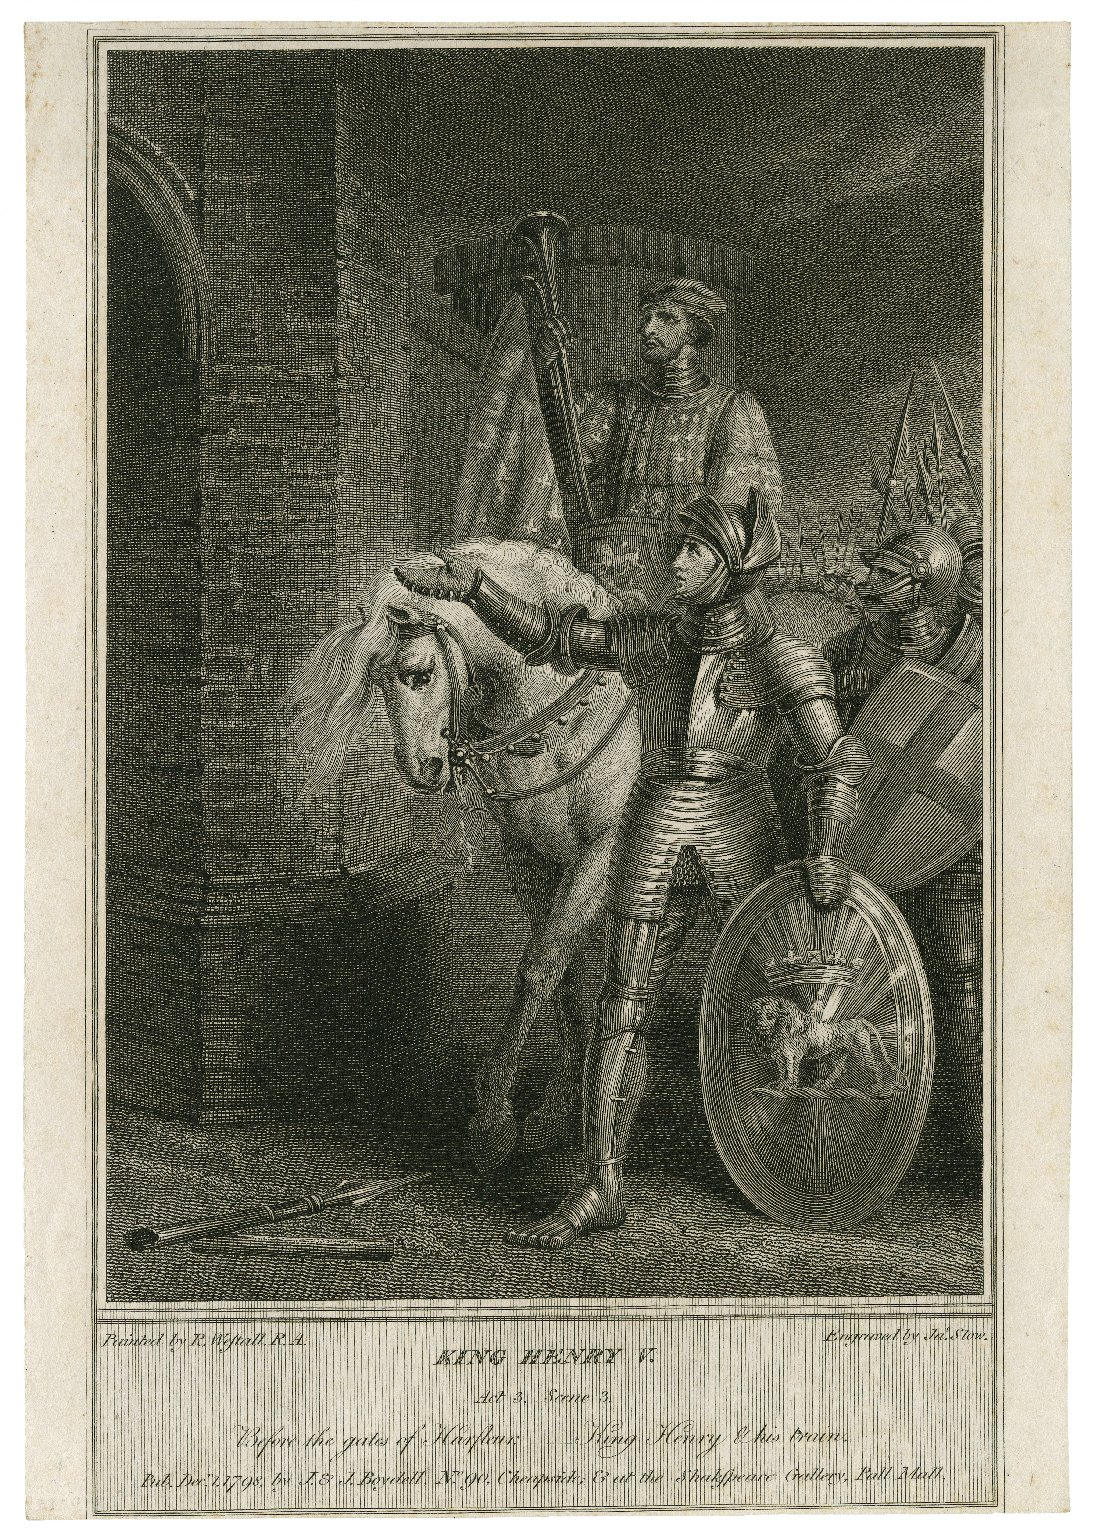 King Henry V, act 3, scene 3, before the gates of Harfleur, King Henry & his train [graphic] / painted by R. Westall, R.A. ; engraved by Jas. Stow.